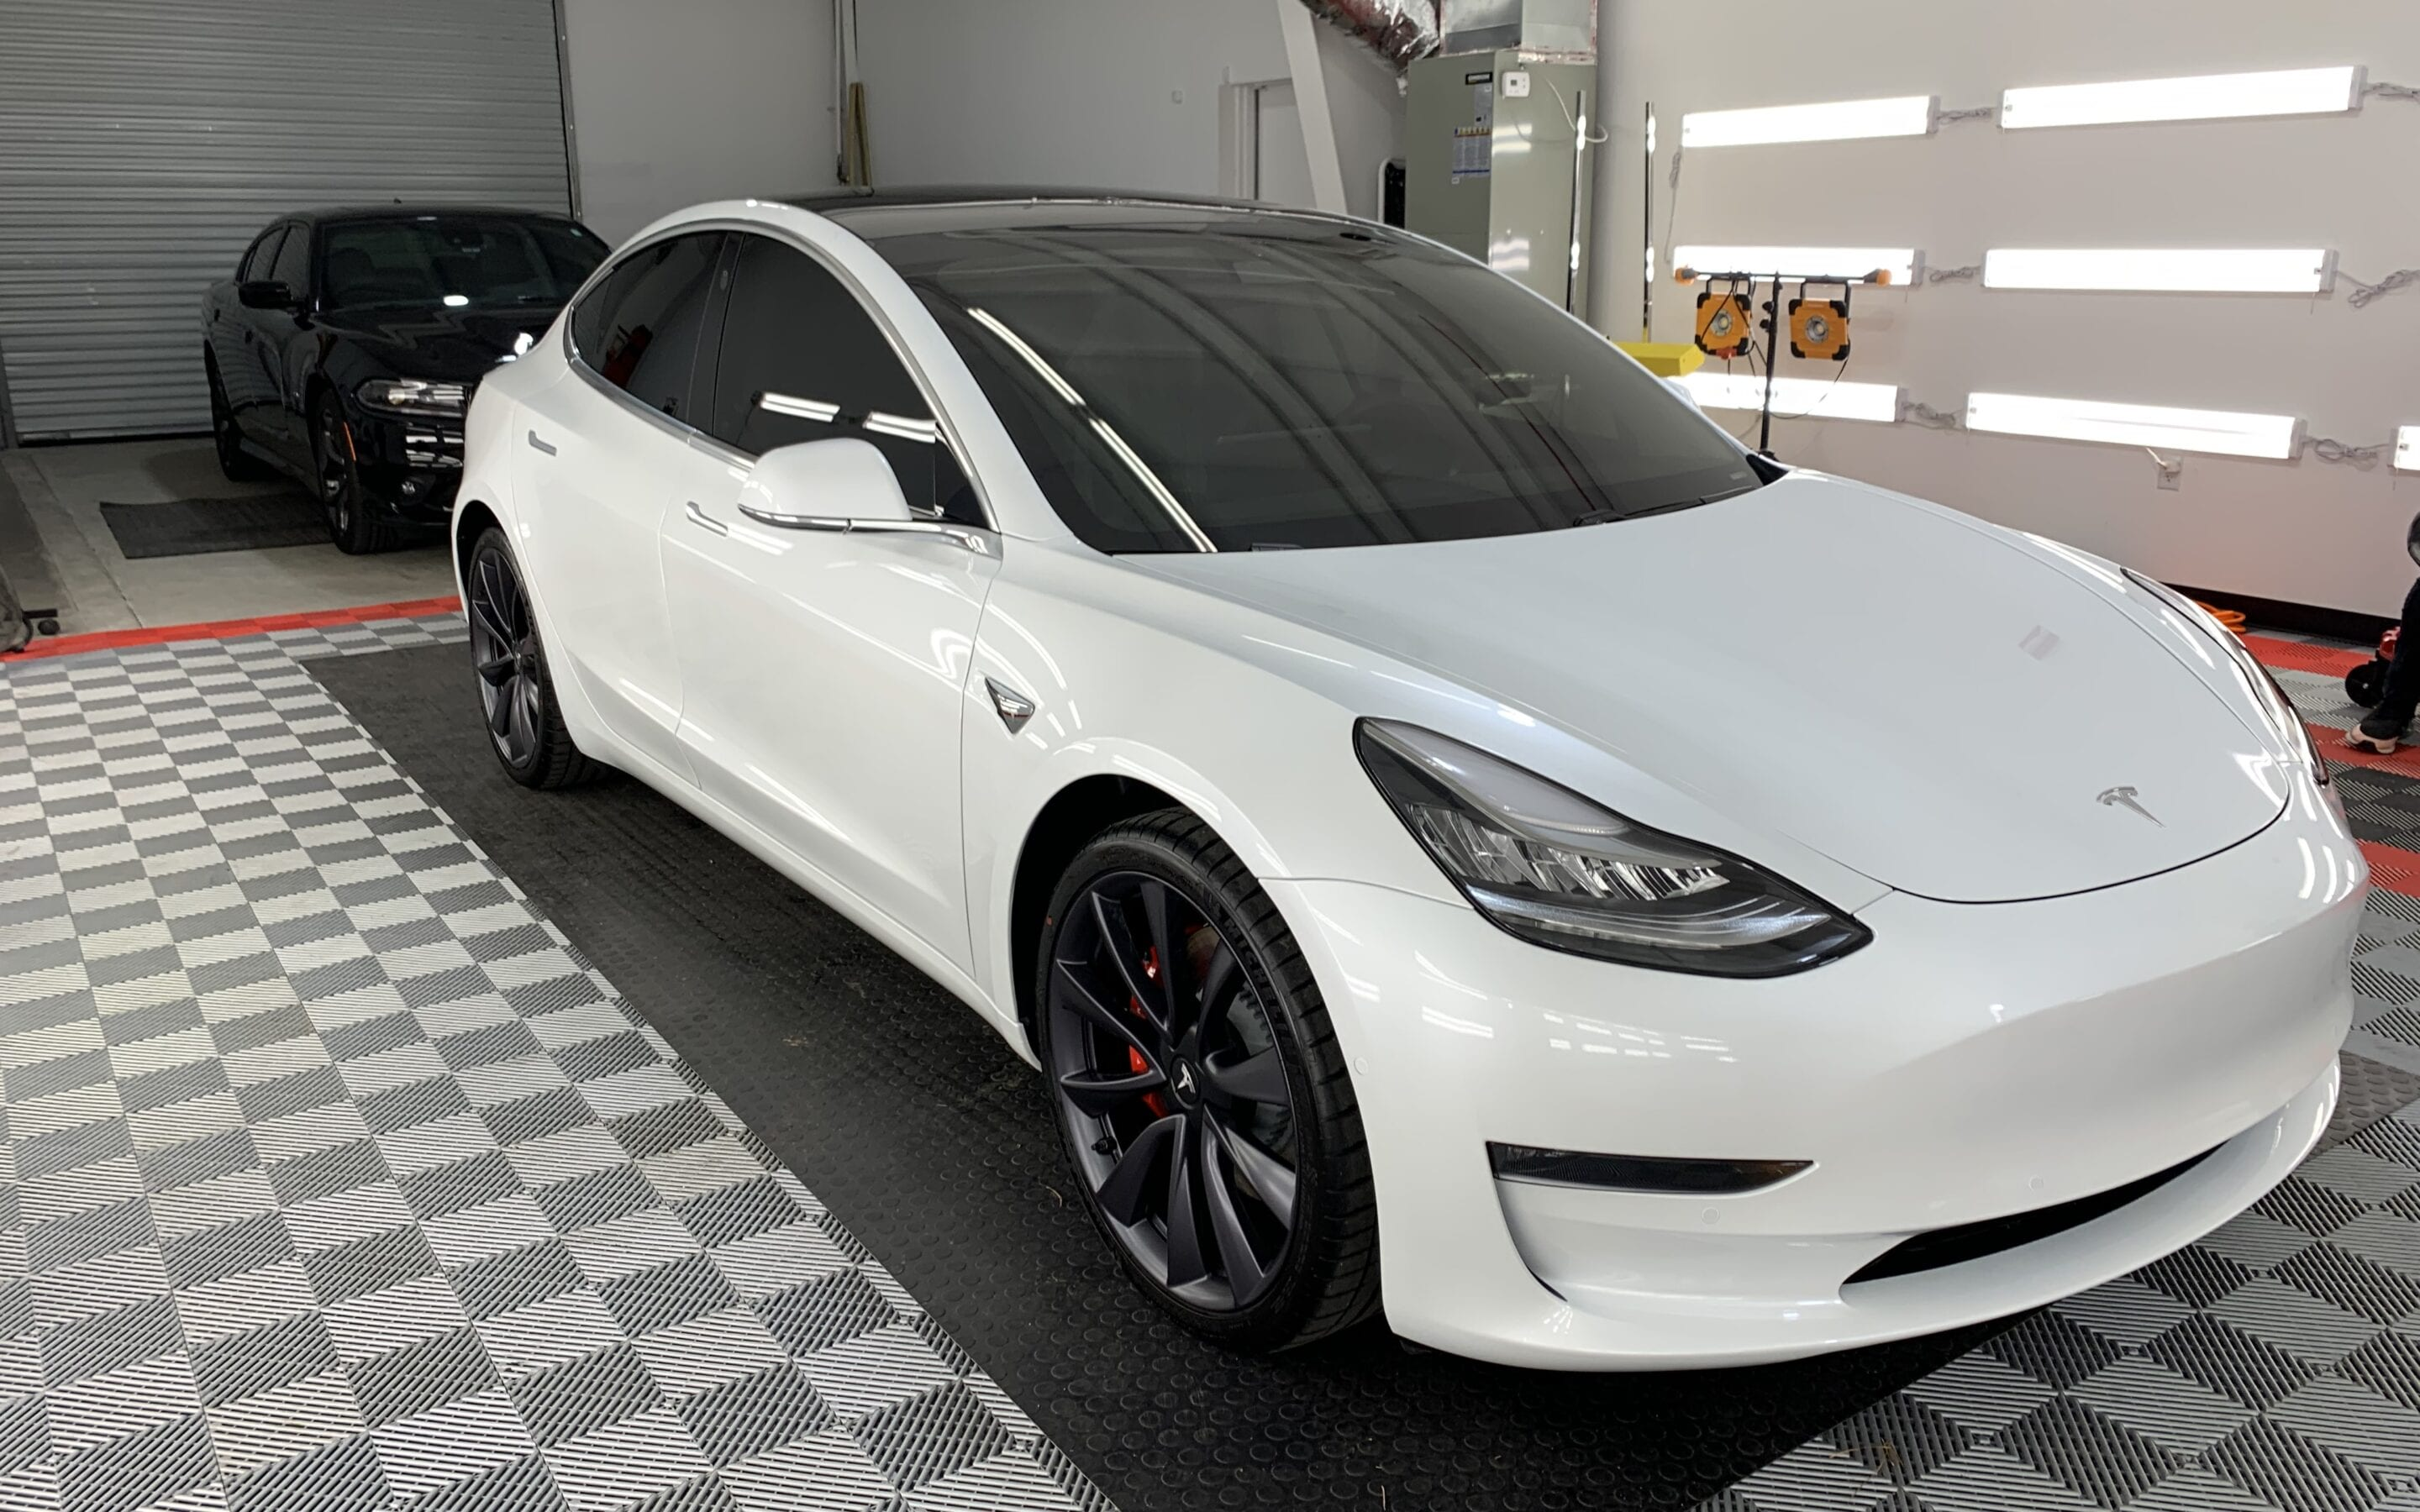 New Car Preparation of a 2019 Tesla Model 3